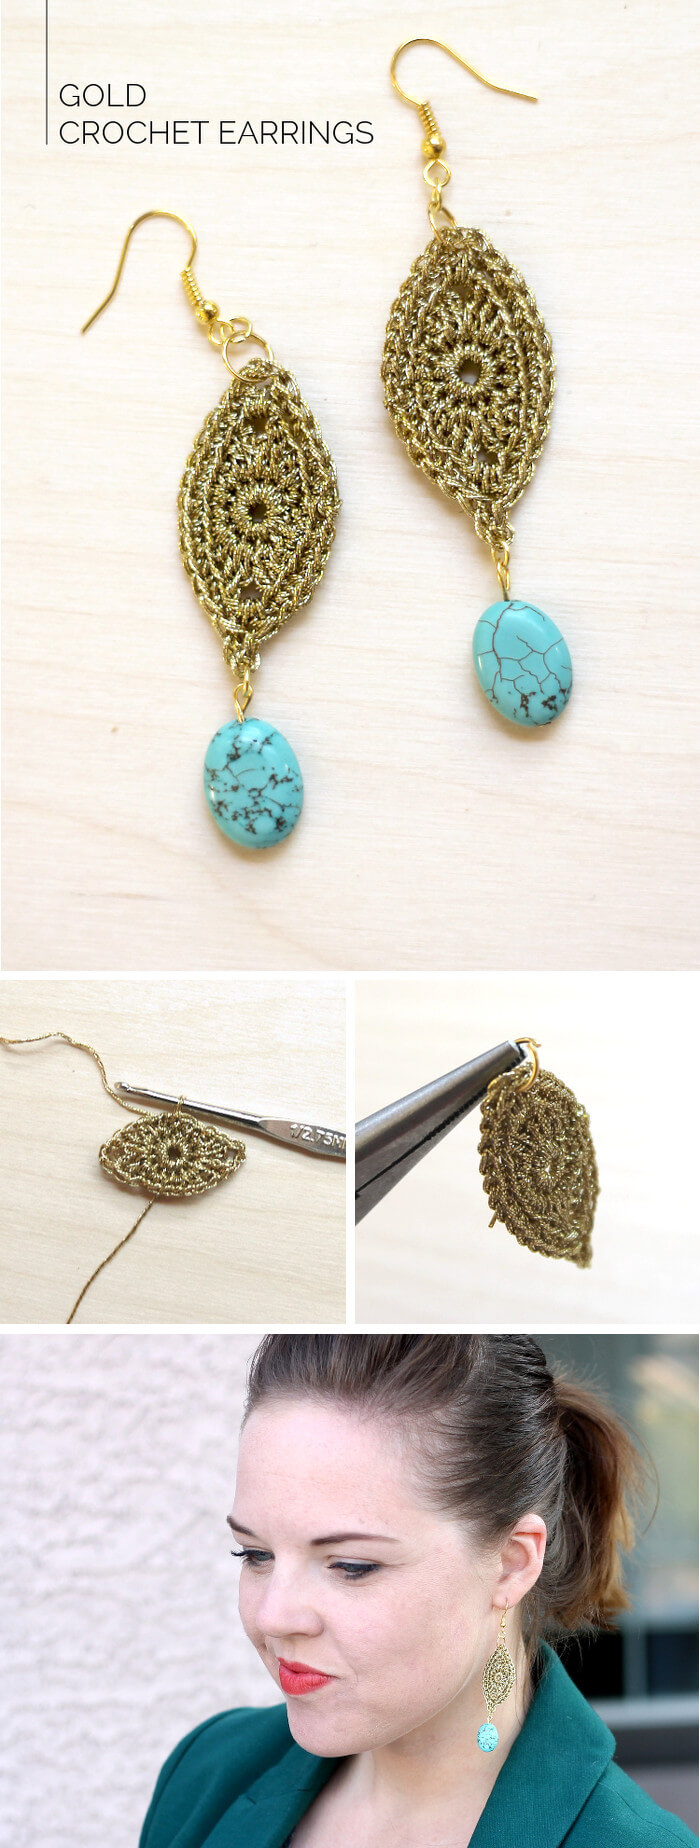 Would you believe these earrings are crocheted?! Get the full tutorial at persialou.com